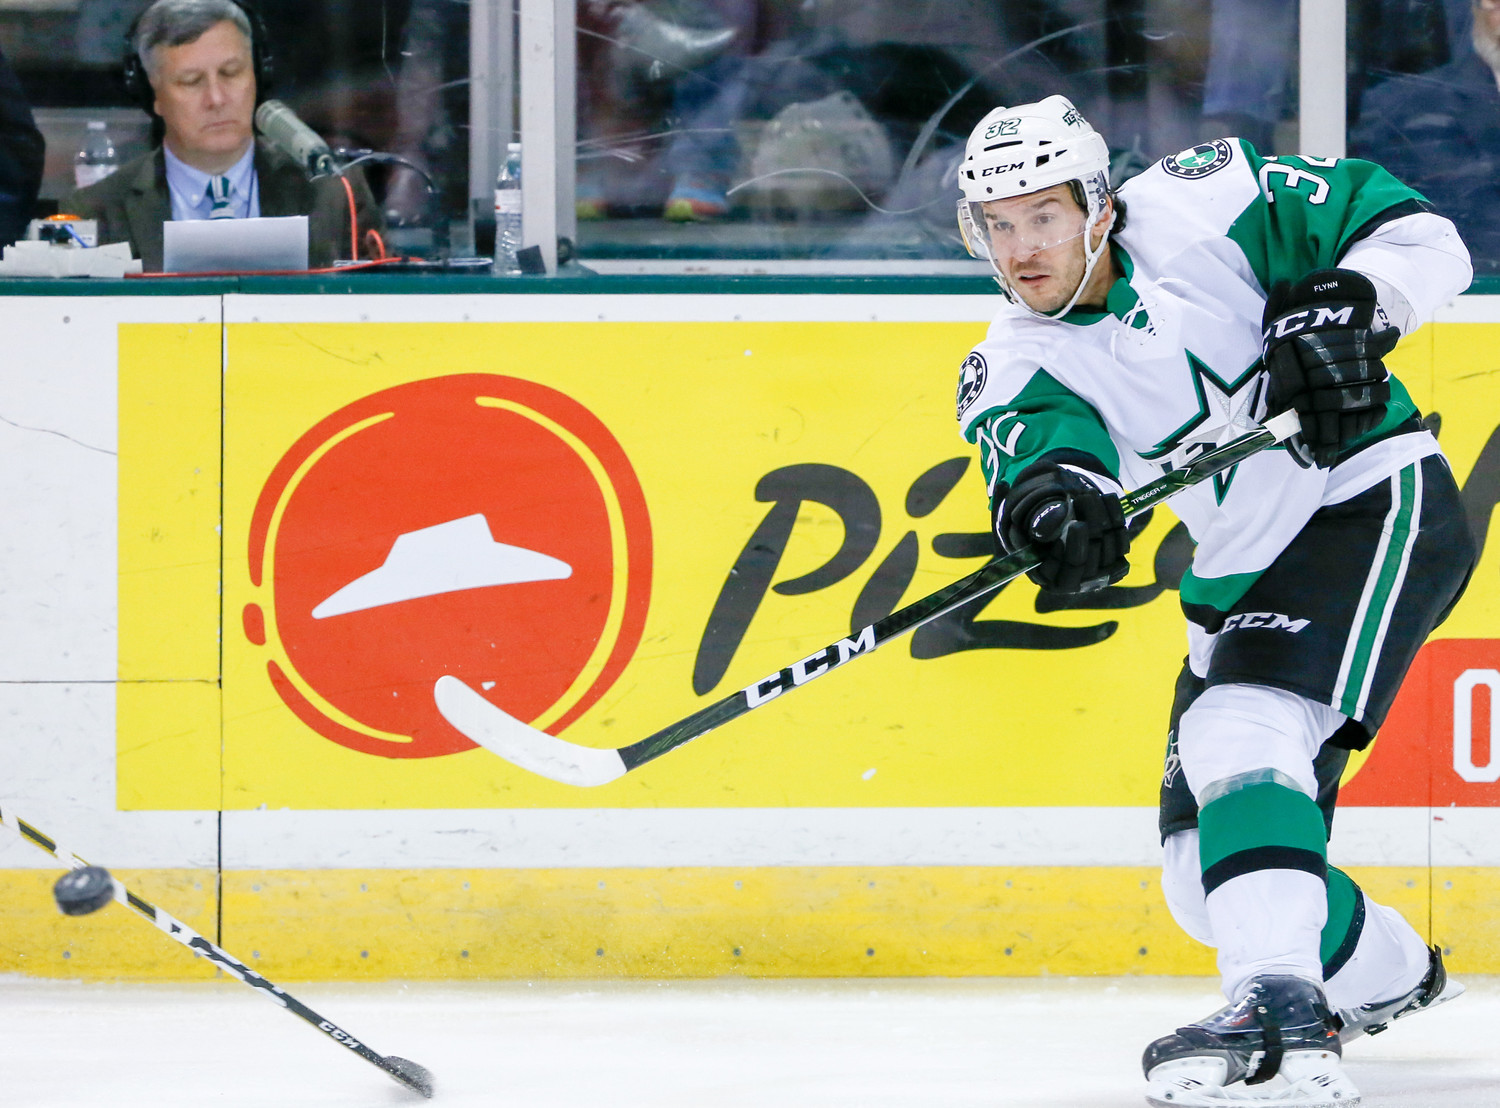 Stars forward Brian Flynn scored late in the third period to send the game to overtime, but Texas lost to the Tucson Roadrunners 2-1 in overtime in Game 1 of the Pacific Division Finals Wednesday night.